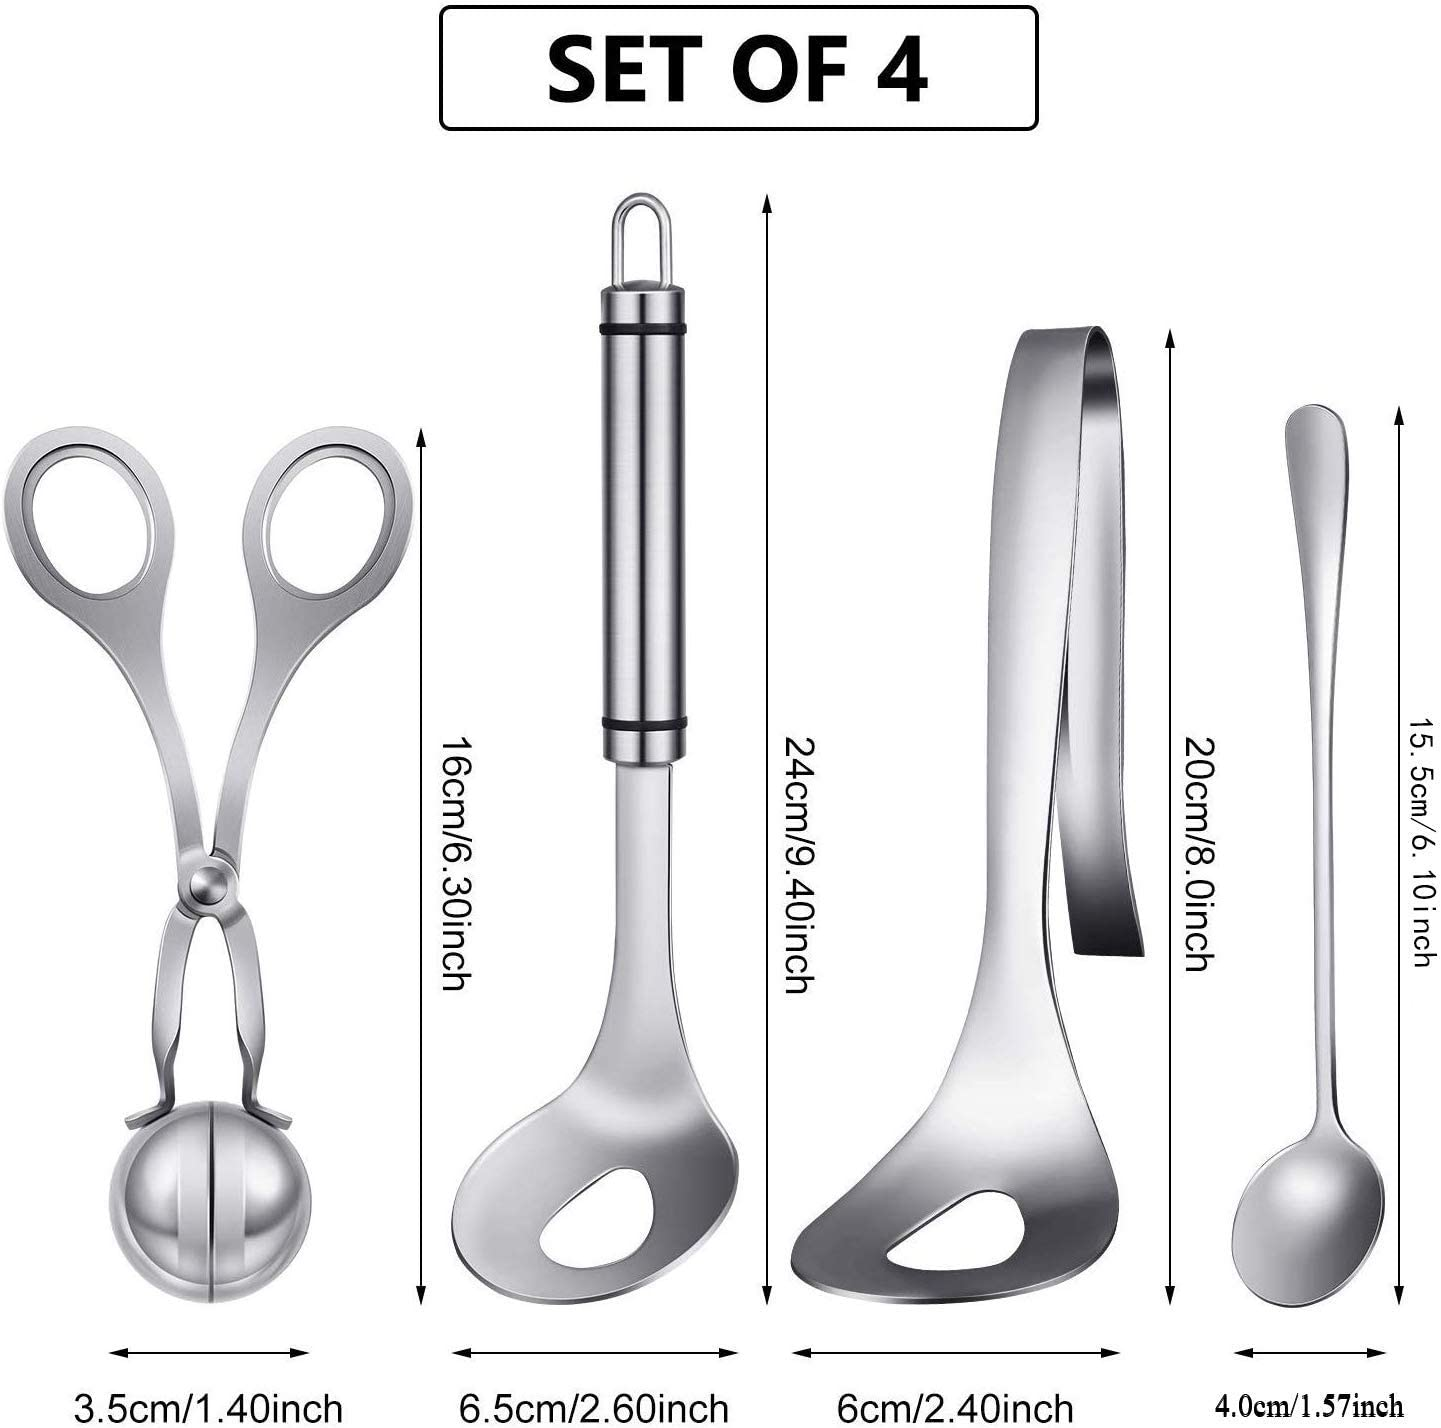 Stainless Steel Kitchen Utensils Comes with A Spoon Ice Cream Spoon 4PS Meatball Maker Nonstick Meat Soup Spoon Meatball Maker Tool